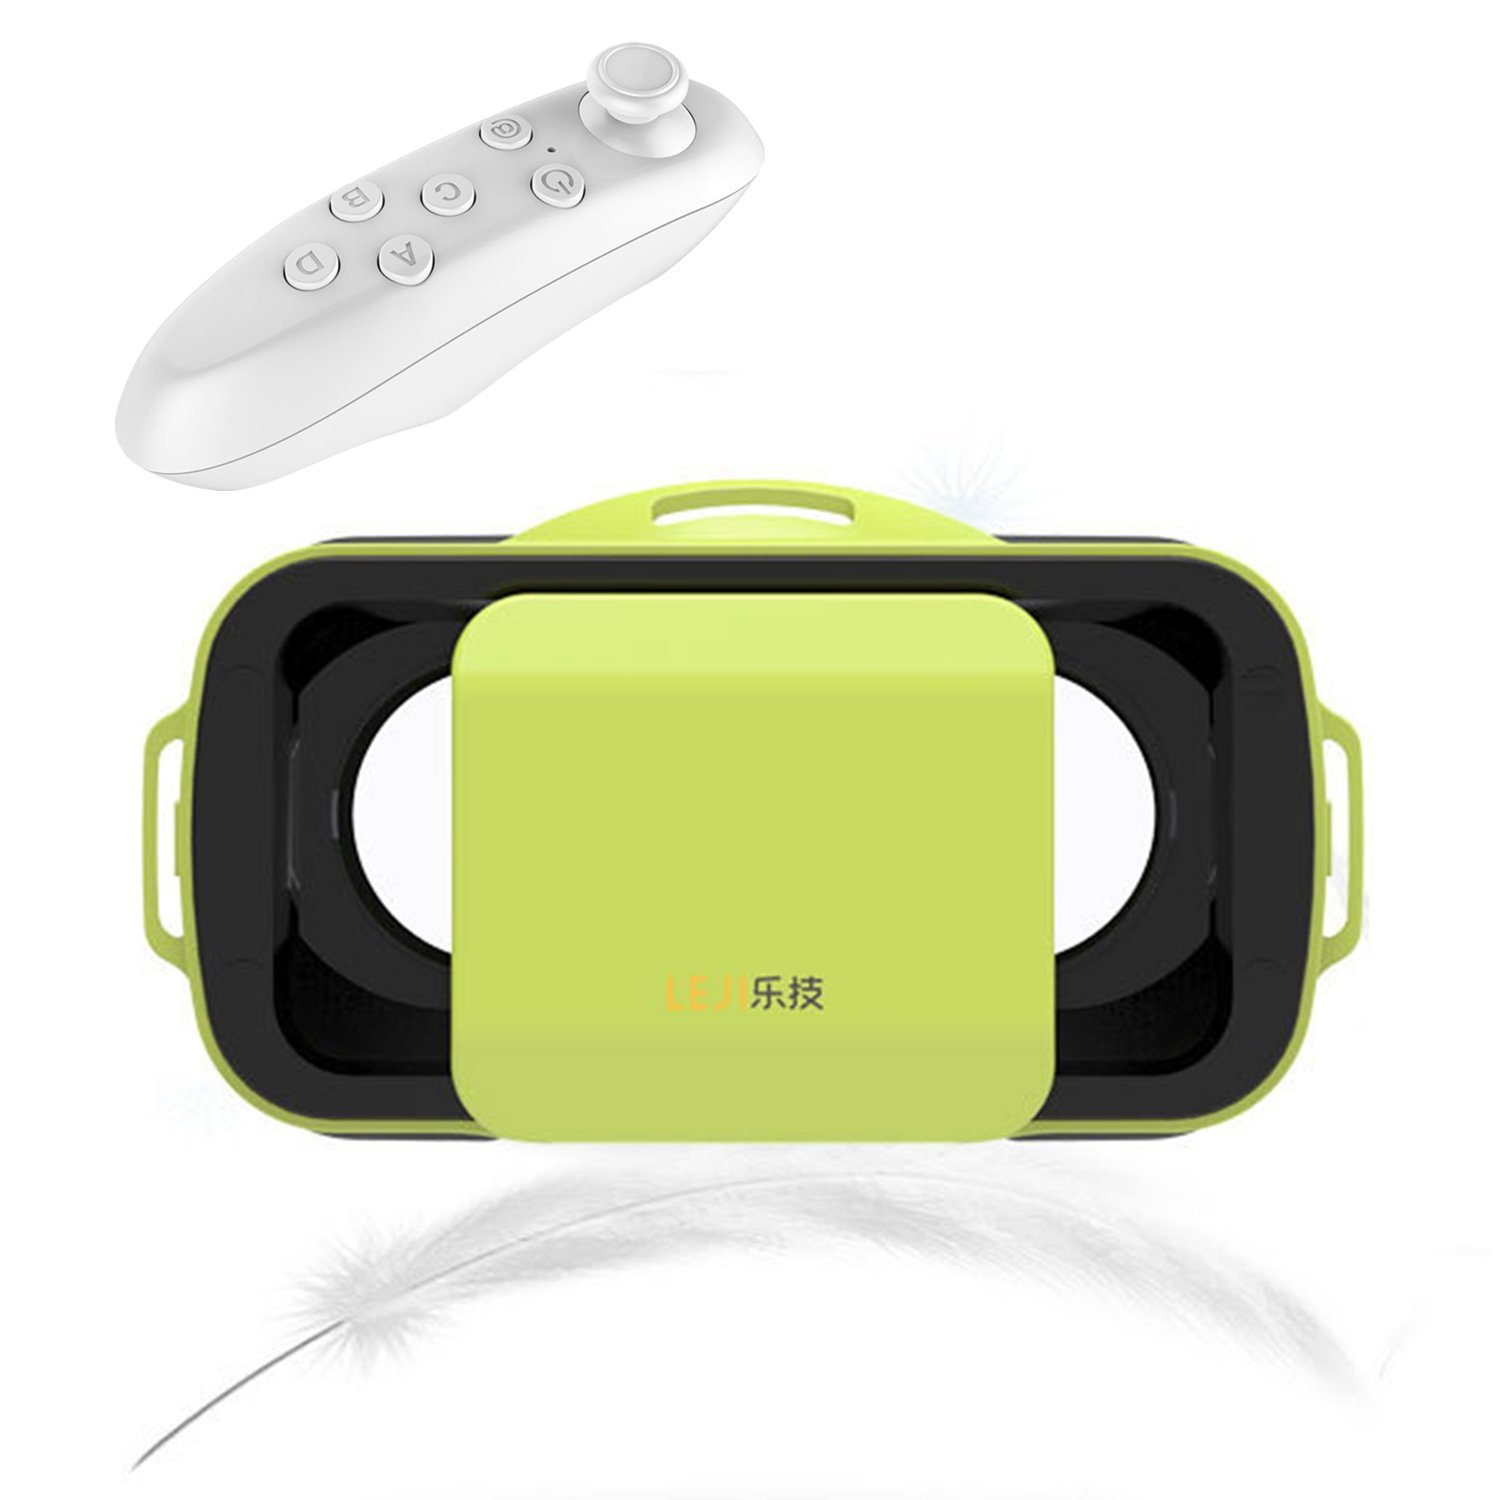 "Mini 3D VR Glasses/Headset, Tsanglight Virtual Reality Headset + Remote Controller for IOS iPhone 7/6/6S Plus, Android Samsung Galaxy S7 Edge S7/6 /J7/A5/A3 2016 & Other 4.5""-5.5"" Cellphone -Green"